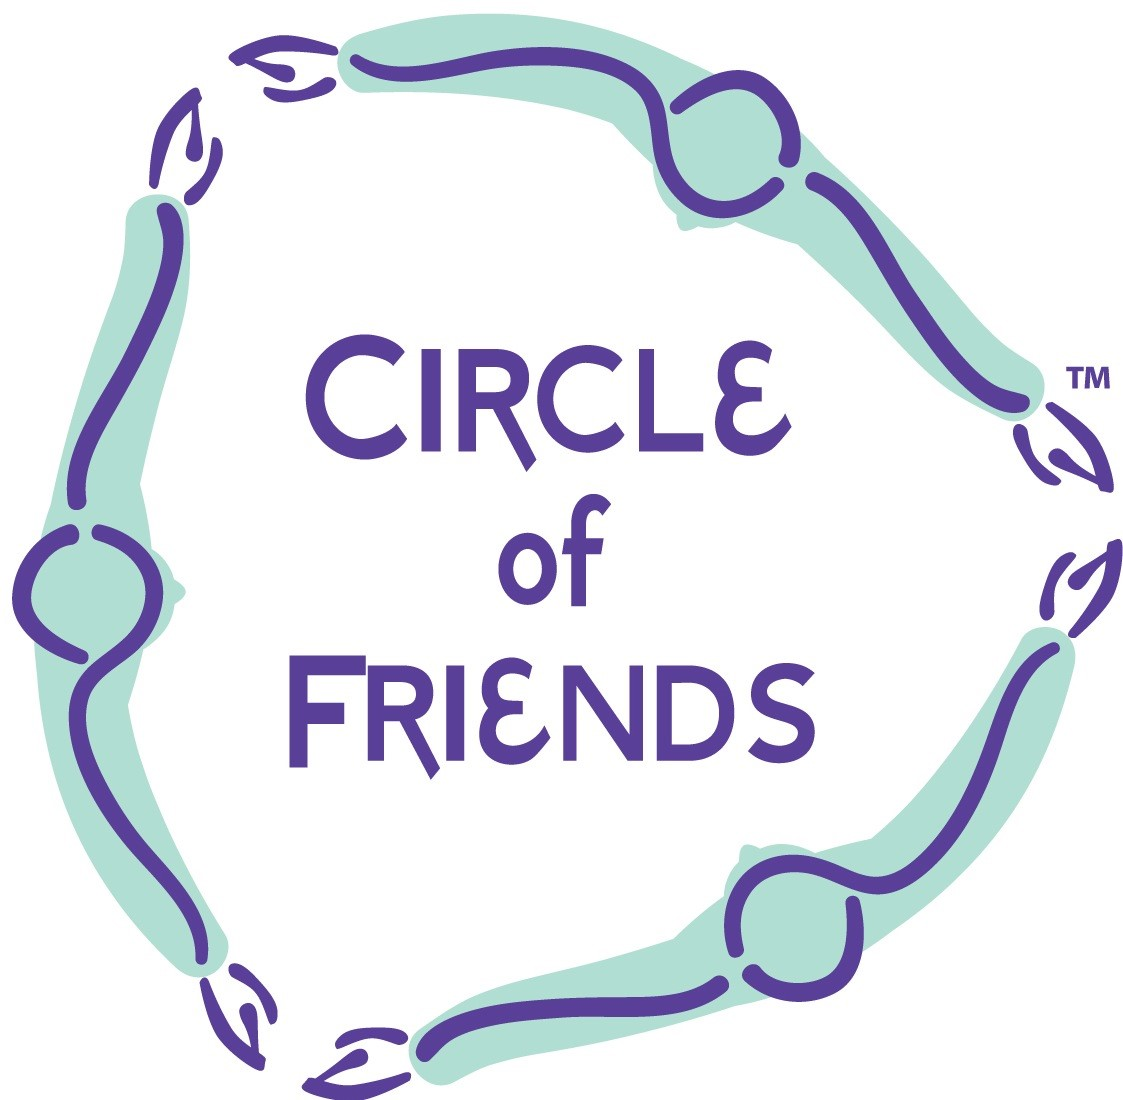 Dating within your circle of friends